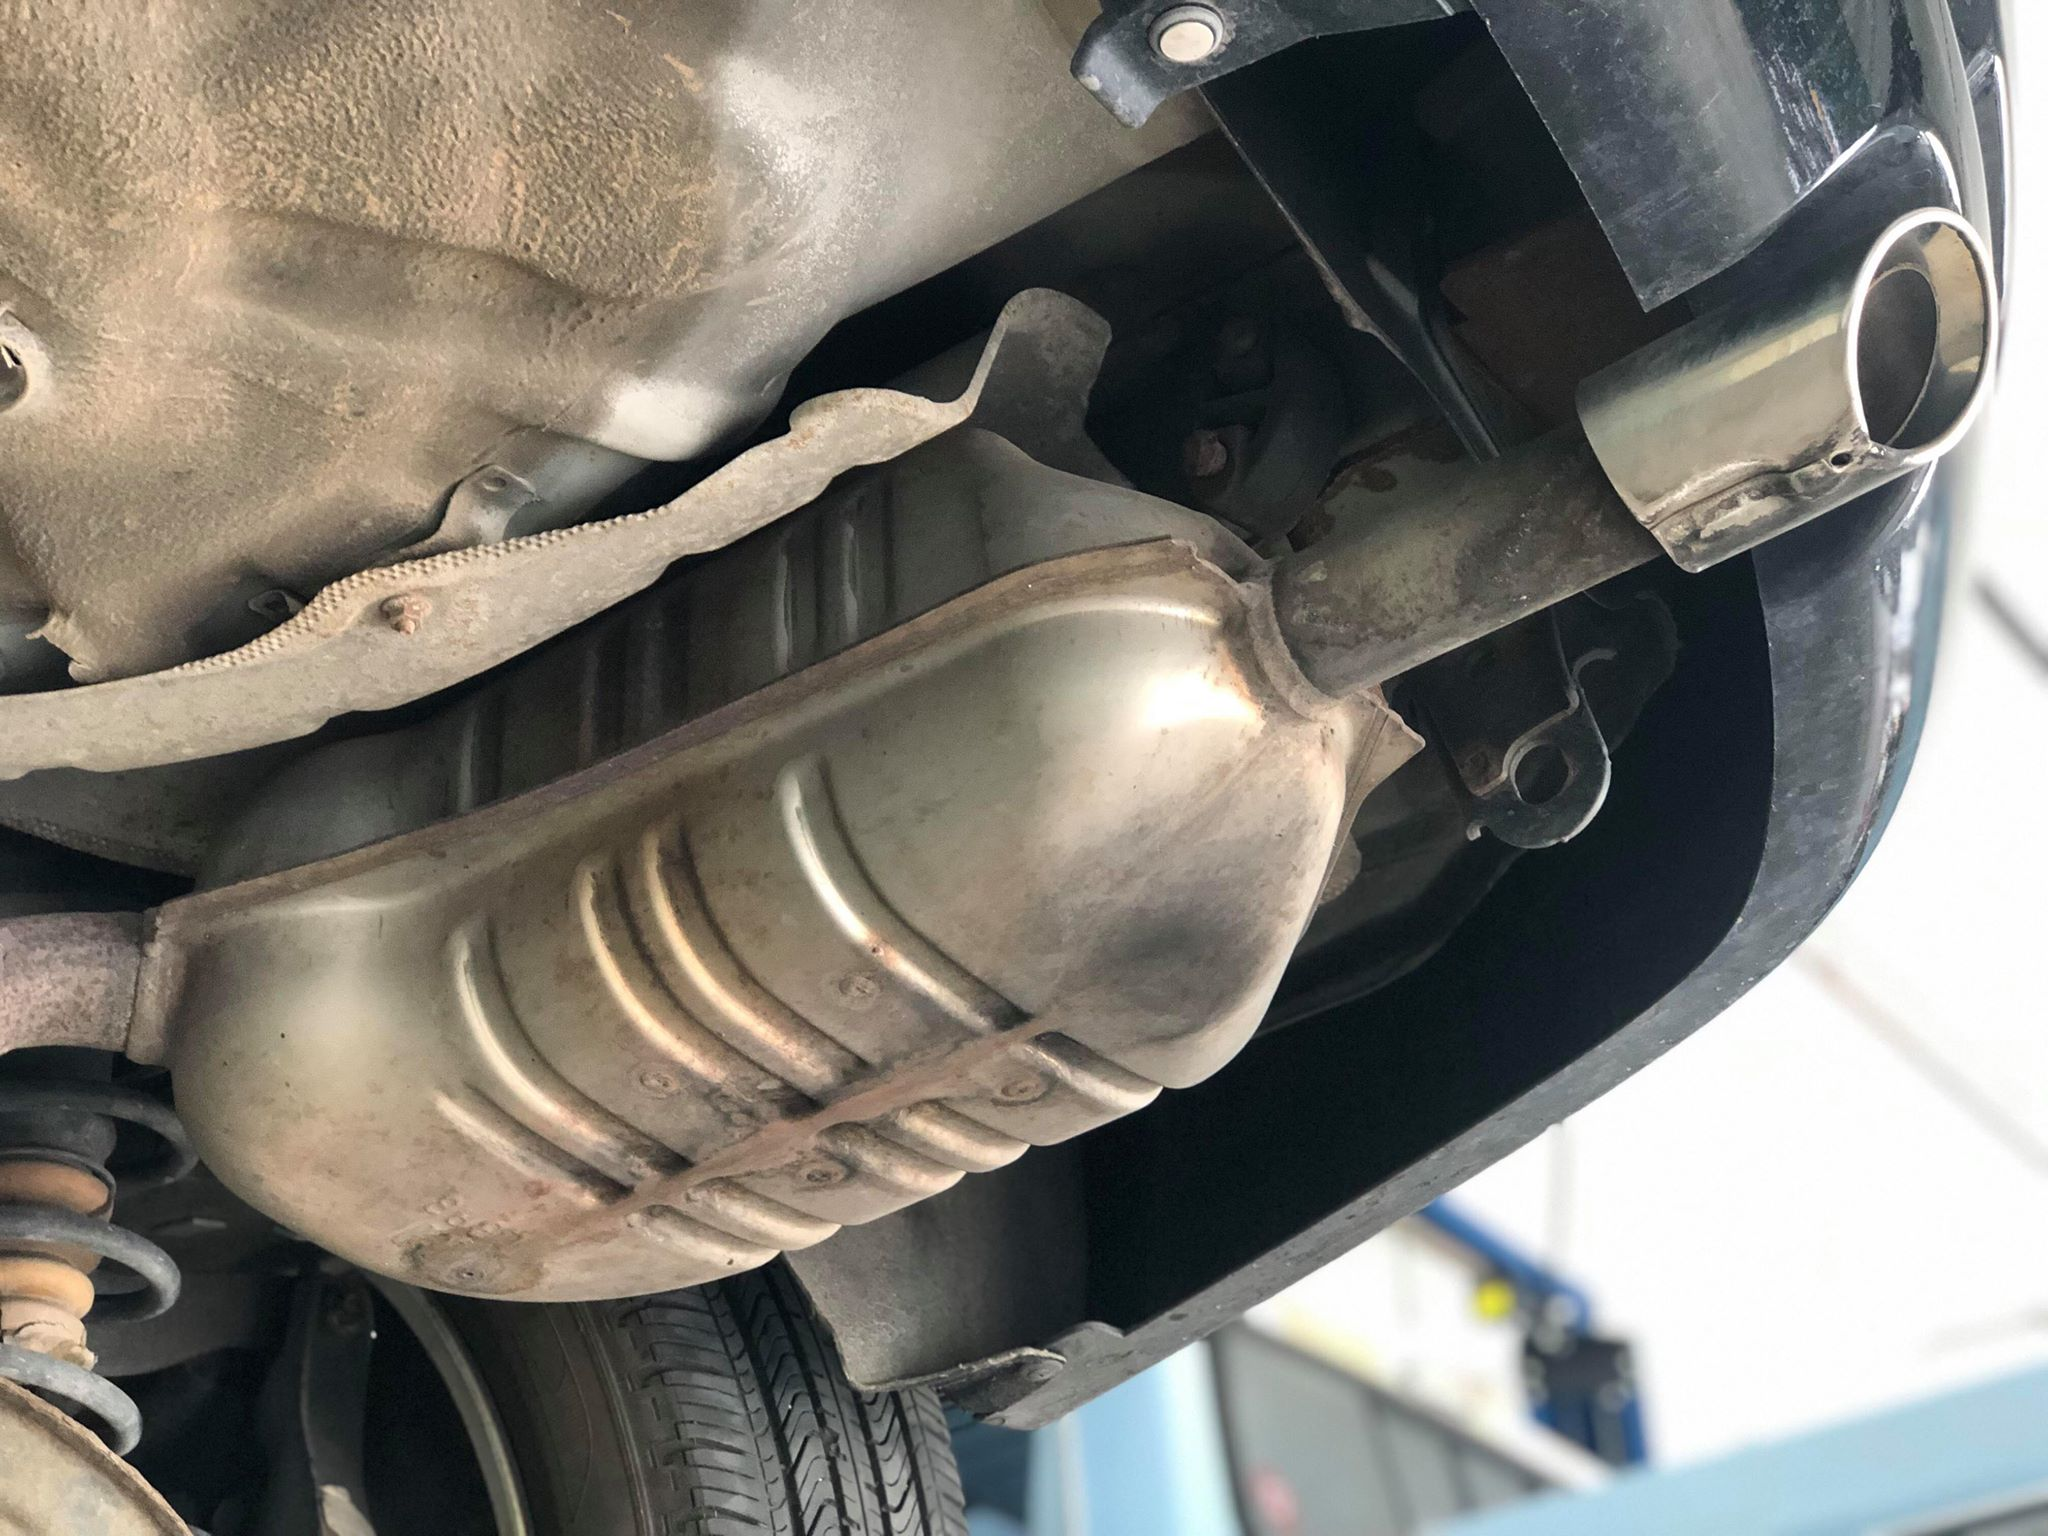 Exhaust pipes Emissions Mesa AZ